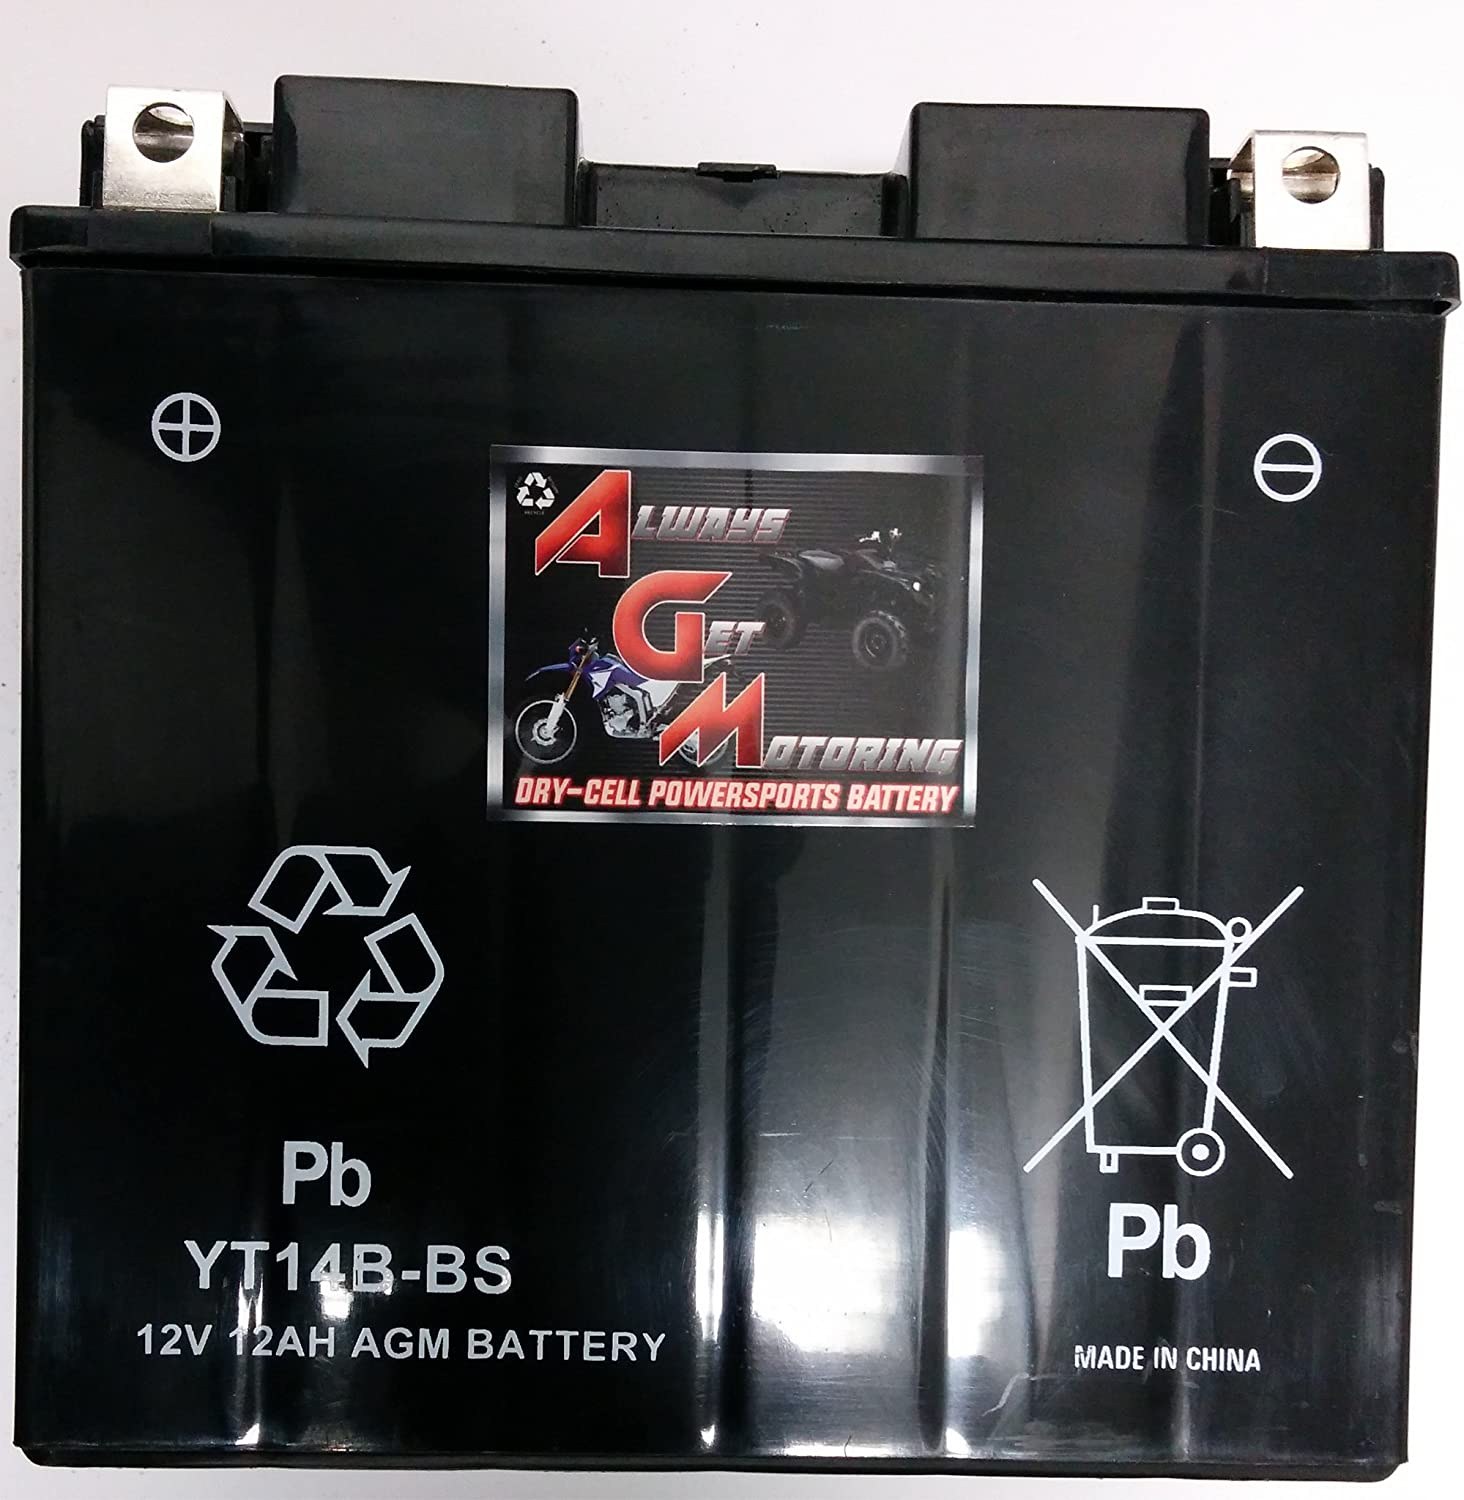 1999-2010 Sealed Maintenace Free 12V Battery High Performance SMF OEM Powersport Motorcycle ATV Snowmobile Watercraft AGM Brand Or Similar Replacement For KMG YT14B-BS Battery For Yamaha 1100 XVS1100 V-Star All By Saskbattery